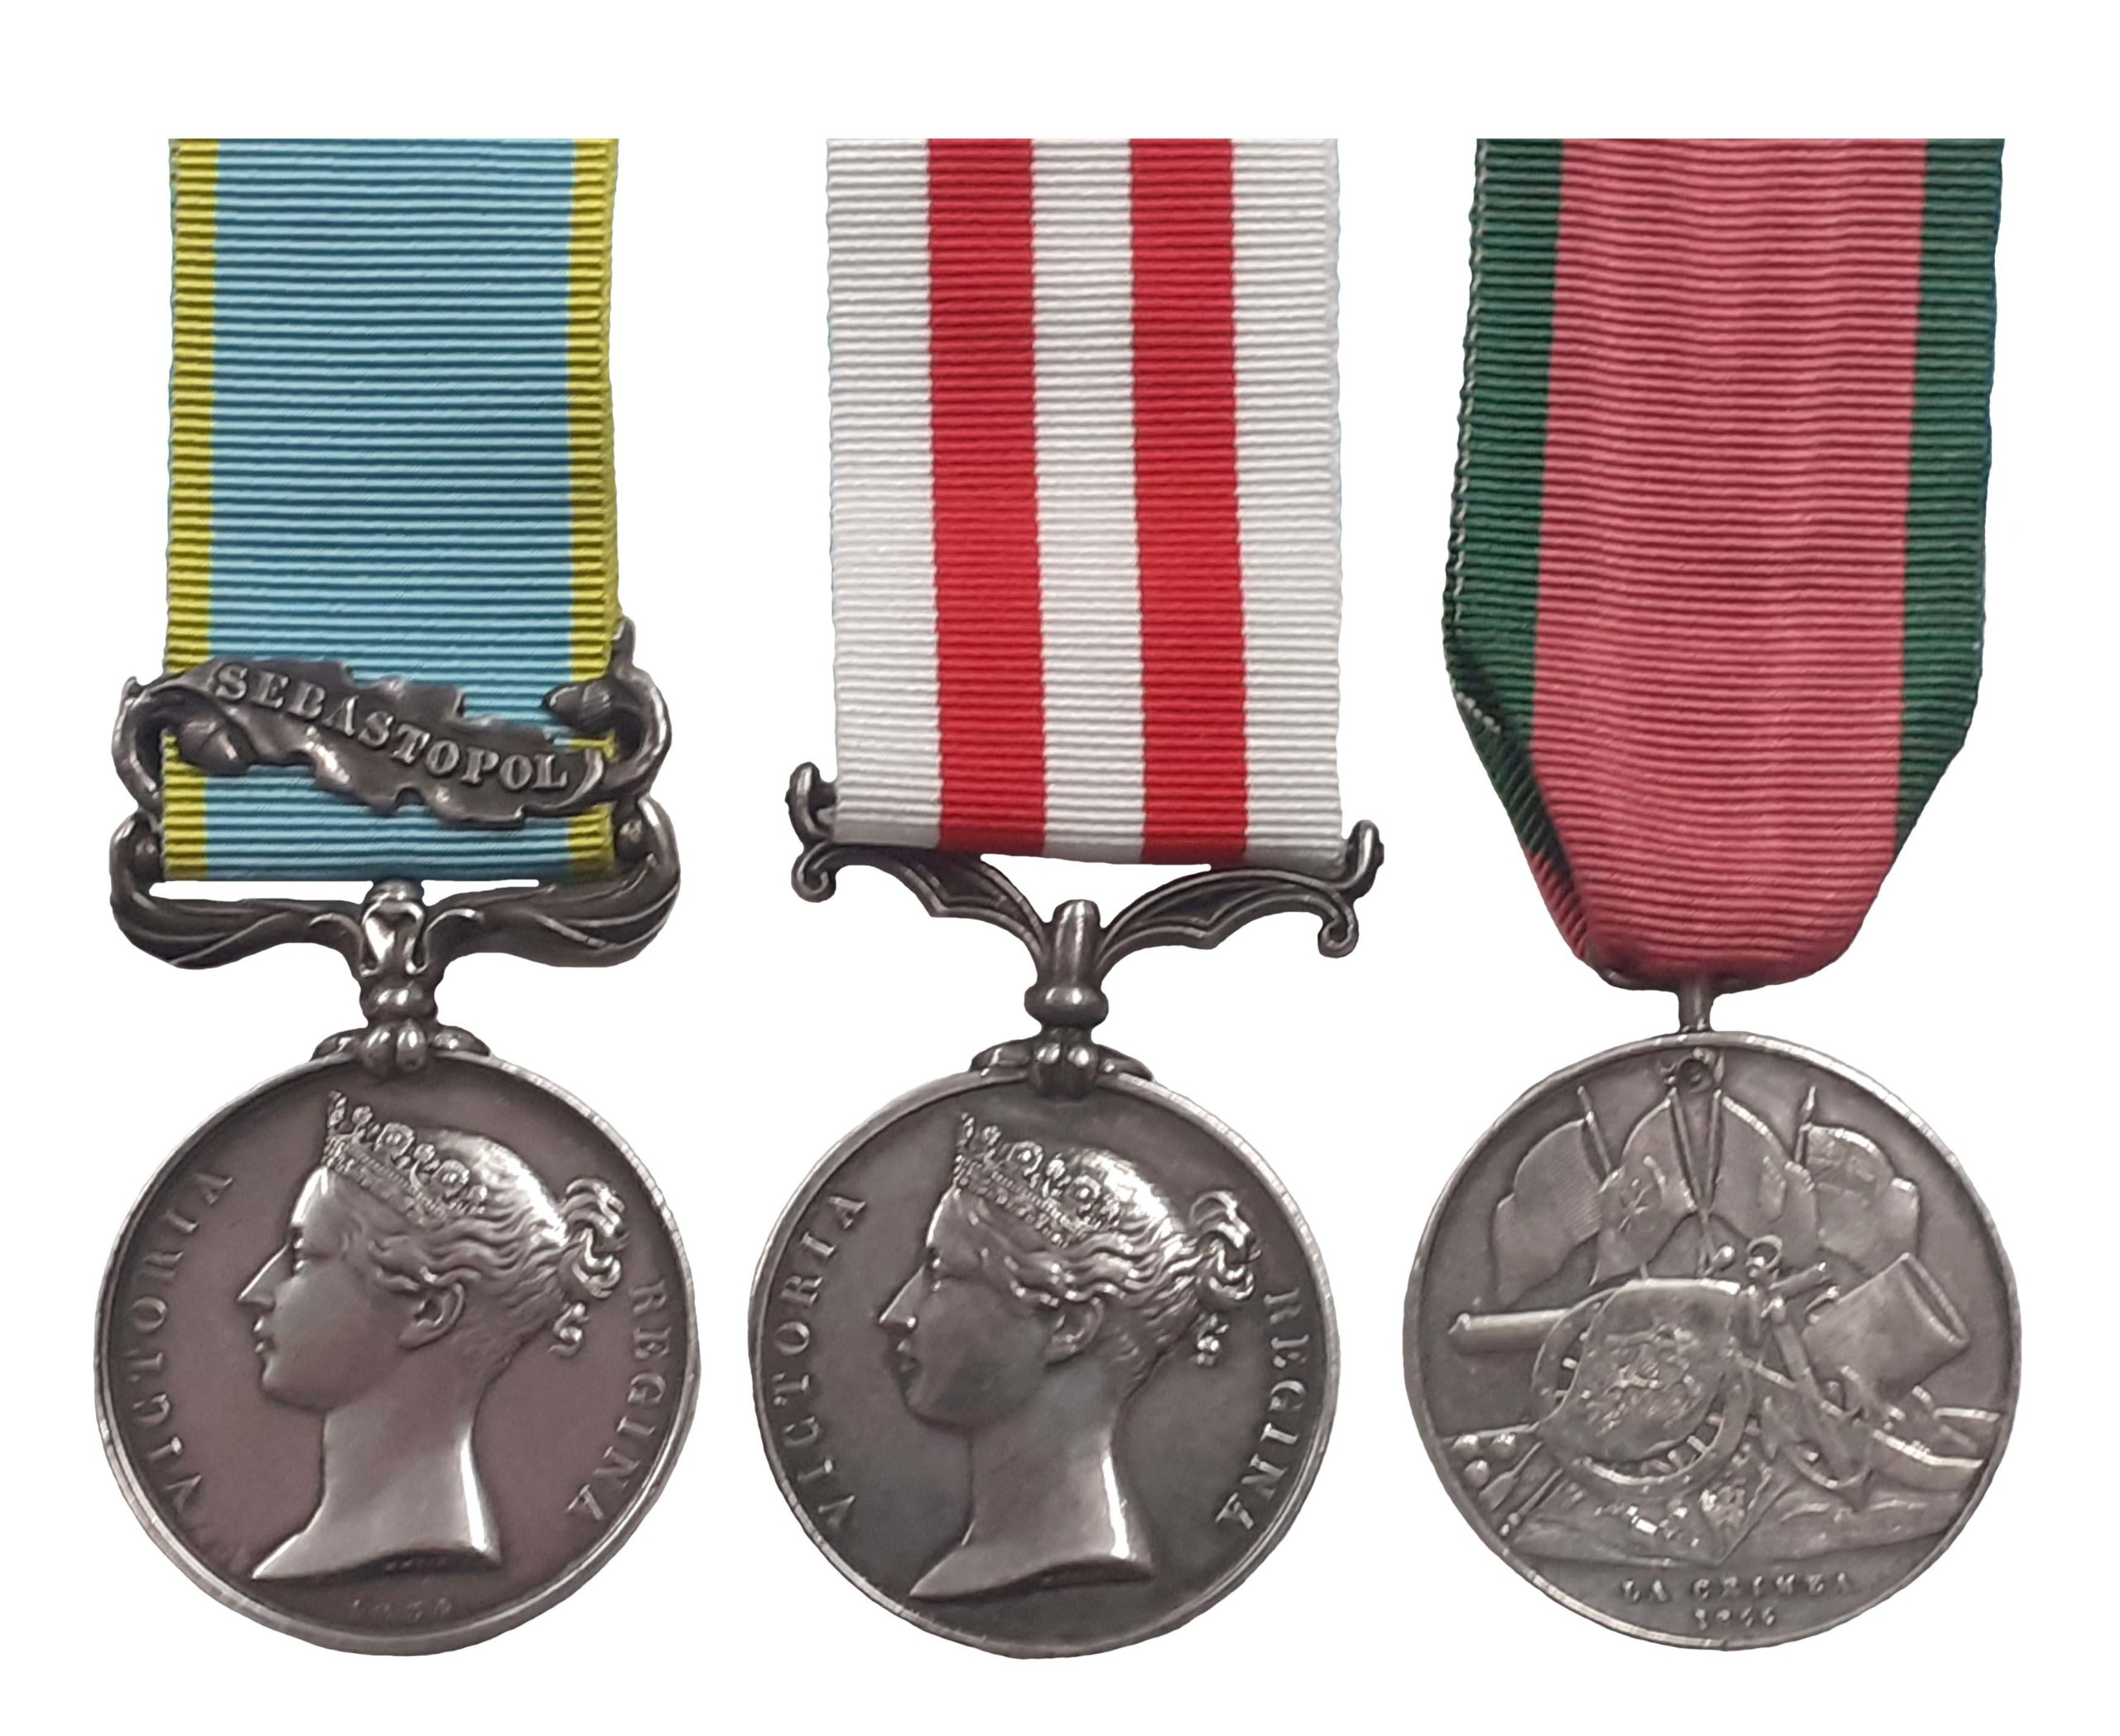 A Crimea and Indian Mutiny Group of 3 to Private James Gray